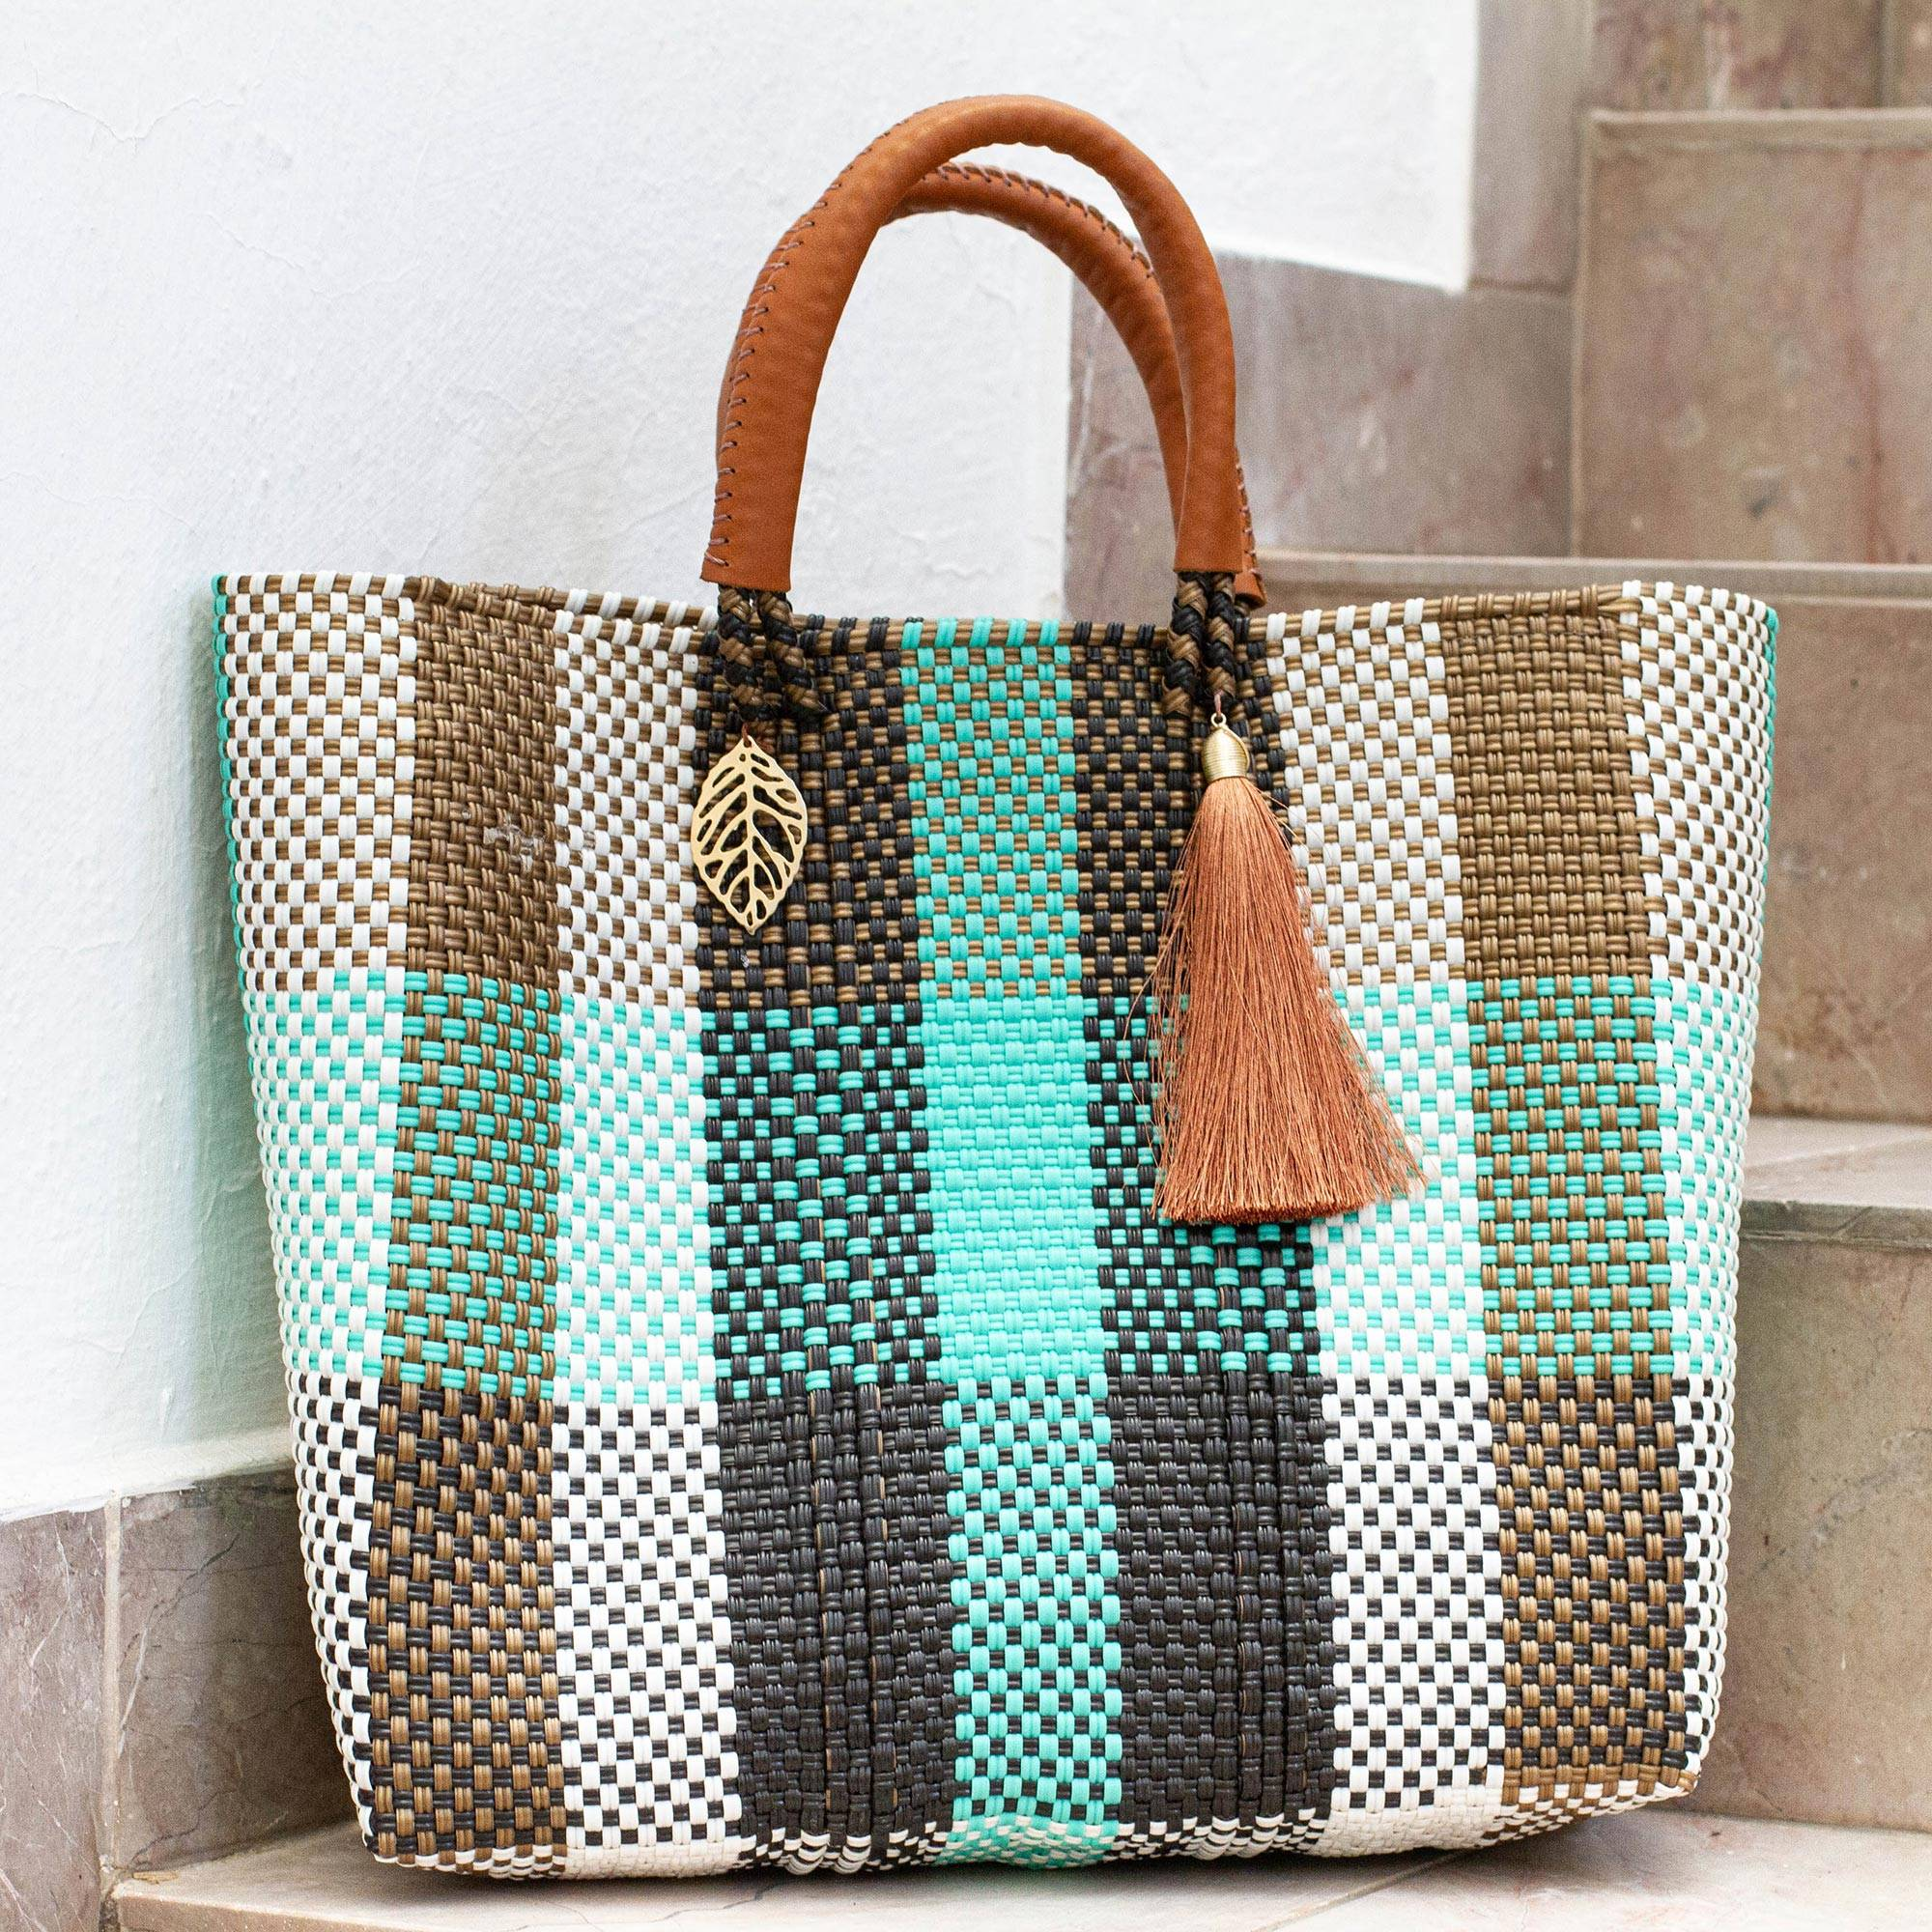 Handwoven Tote Bag For Men or Women Fully Lined With Pockets